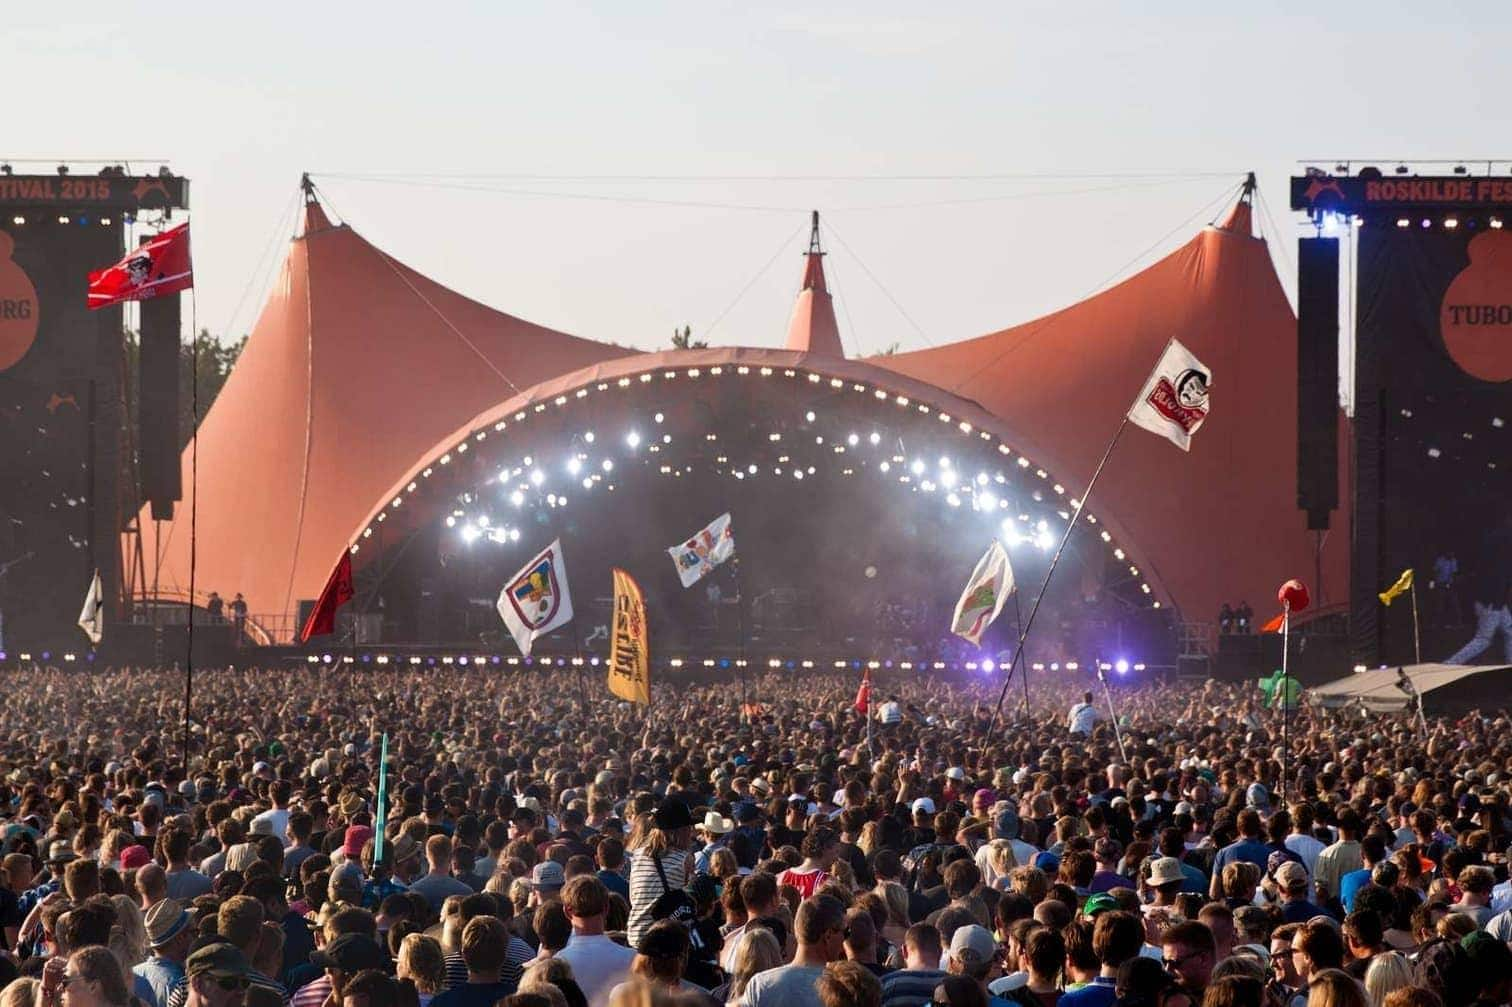 <p><strong>3. Rock am Ring &amp; Rock im Park<br /></strong></p>